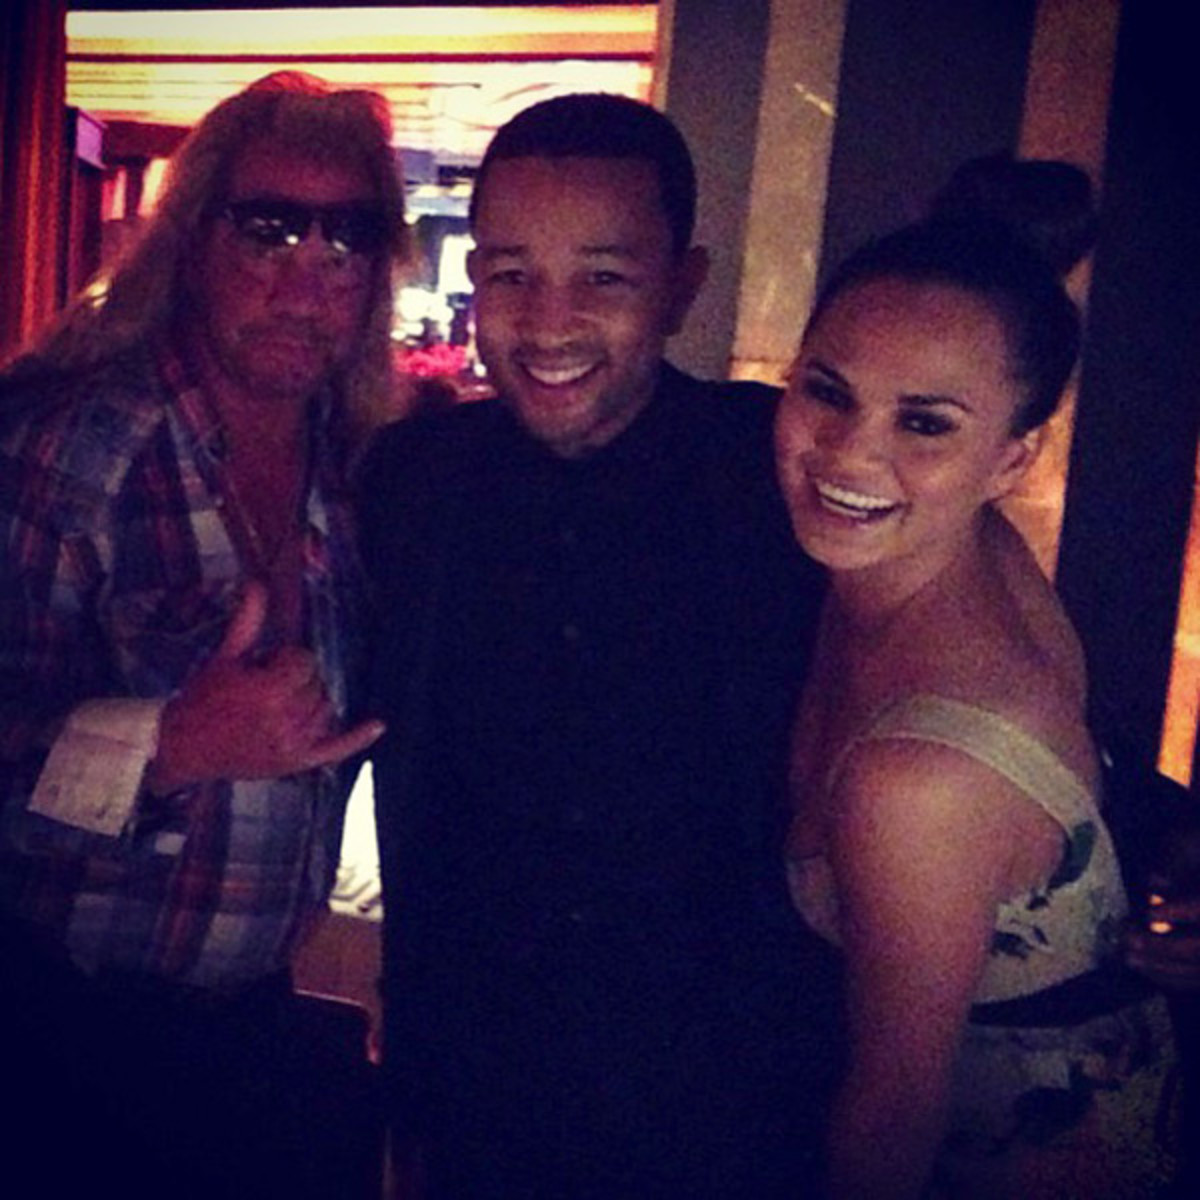 Dog the Bounty Hunter, John Legend and Chrissy Teigen :: @chrissy_teigen